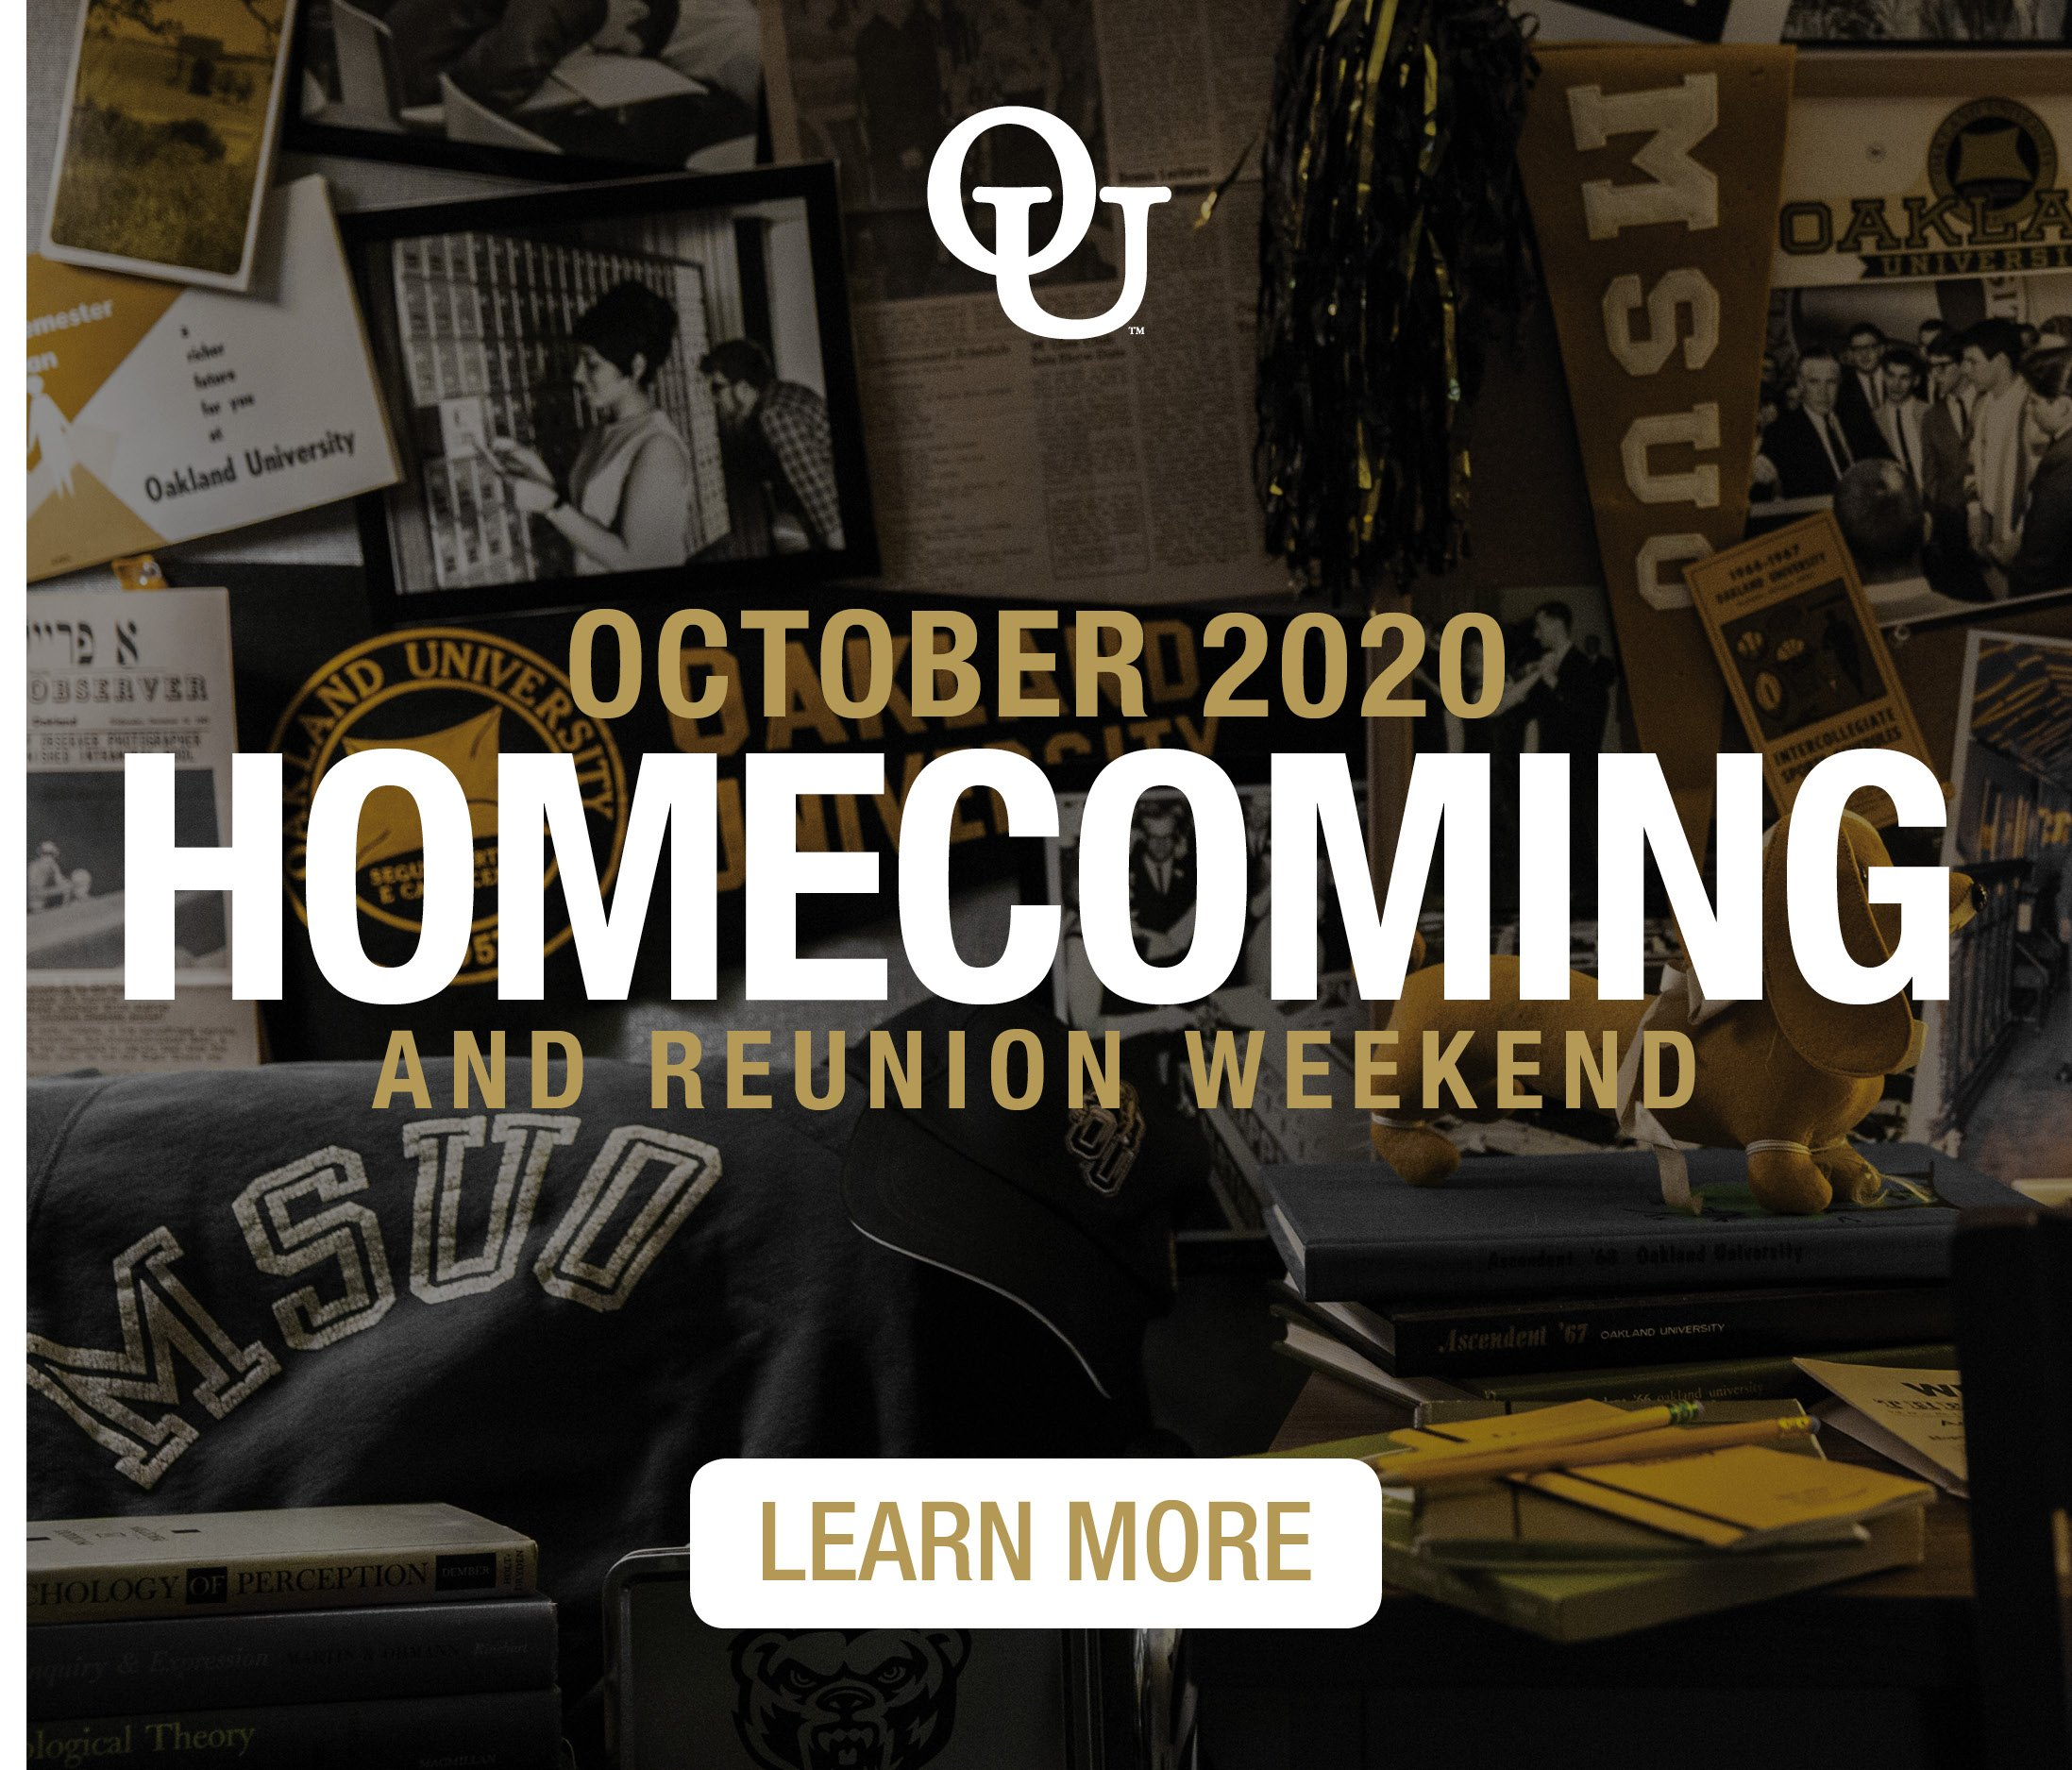 Links to O U Homecoming webpage. Text reads - October 2020 homecoming and reunion weekend. Learn more.